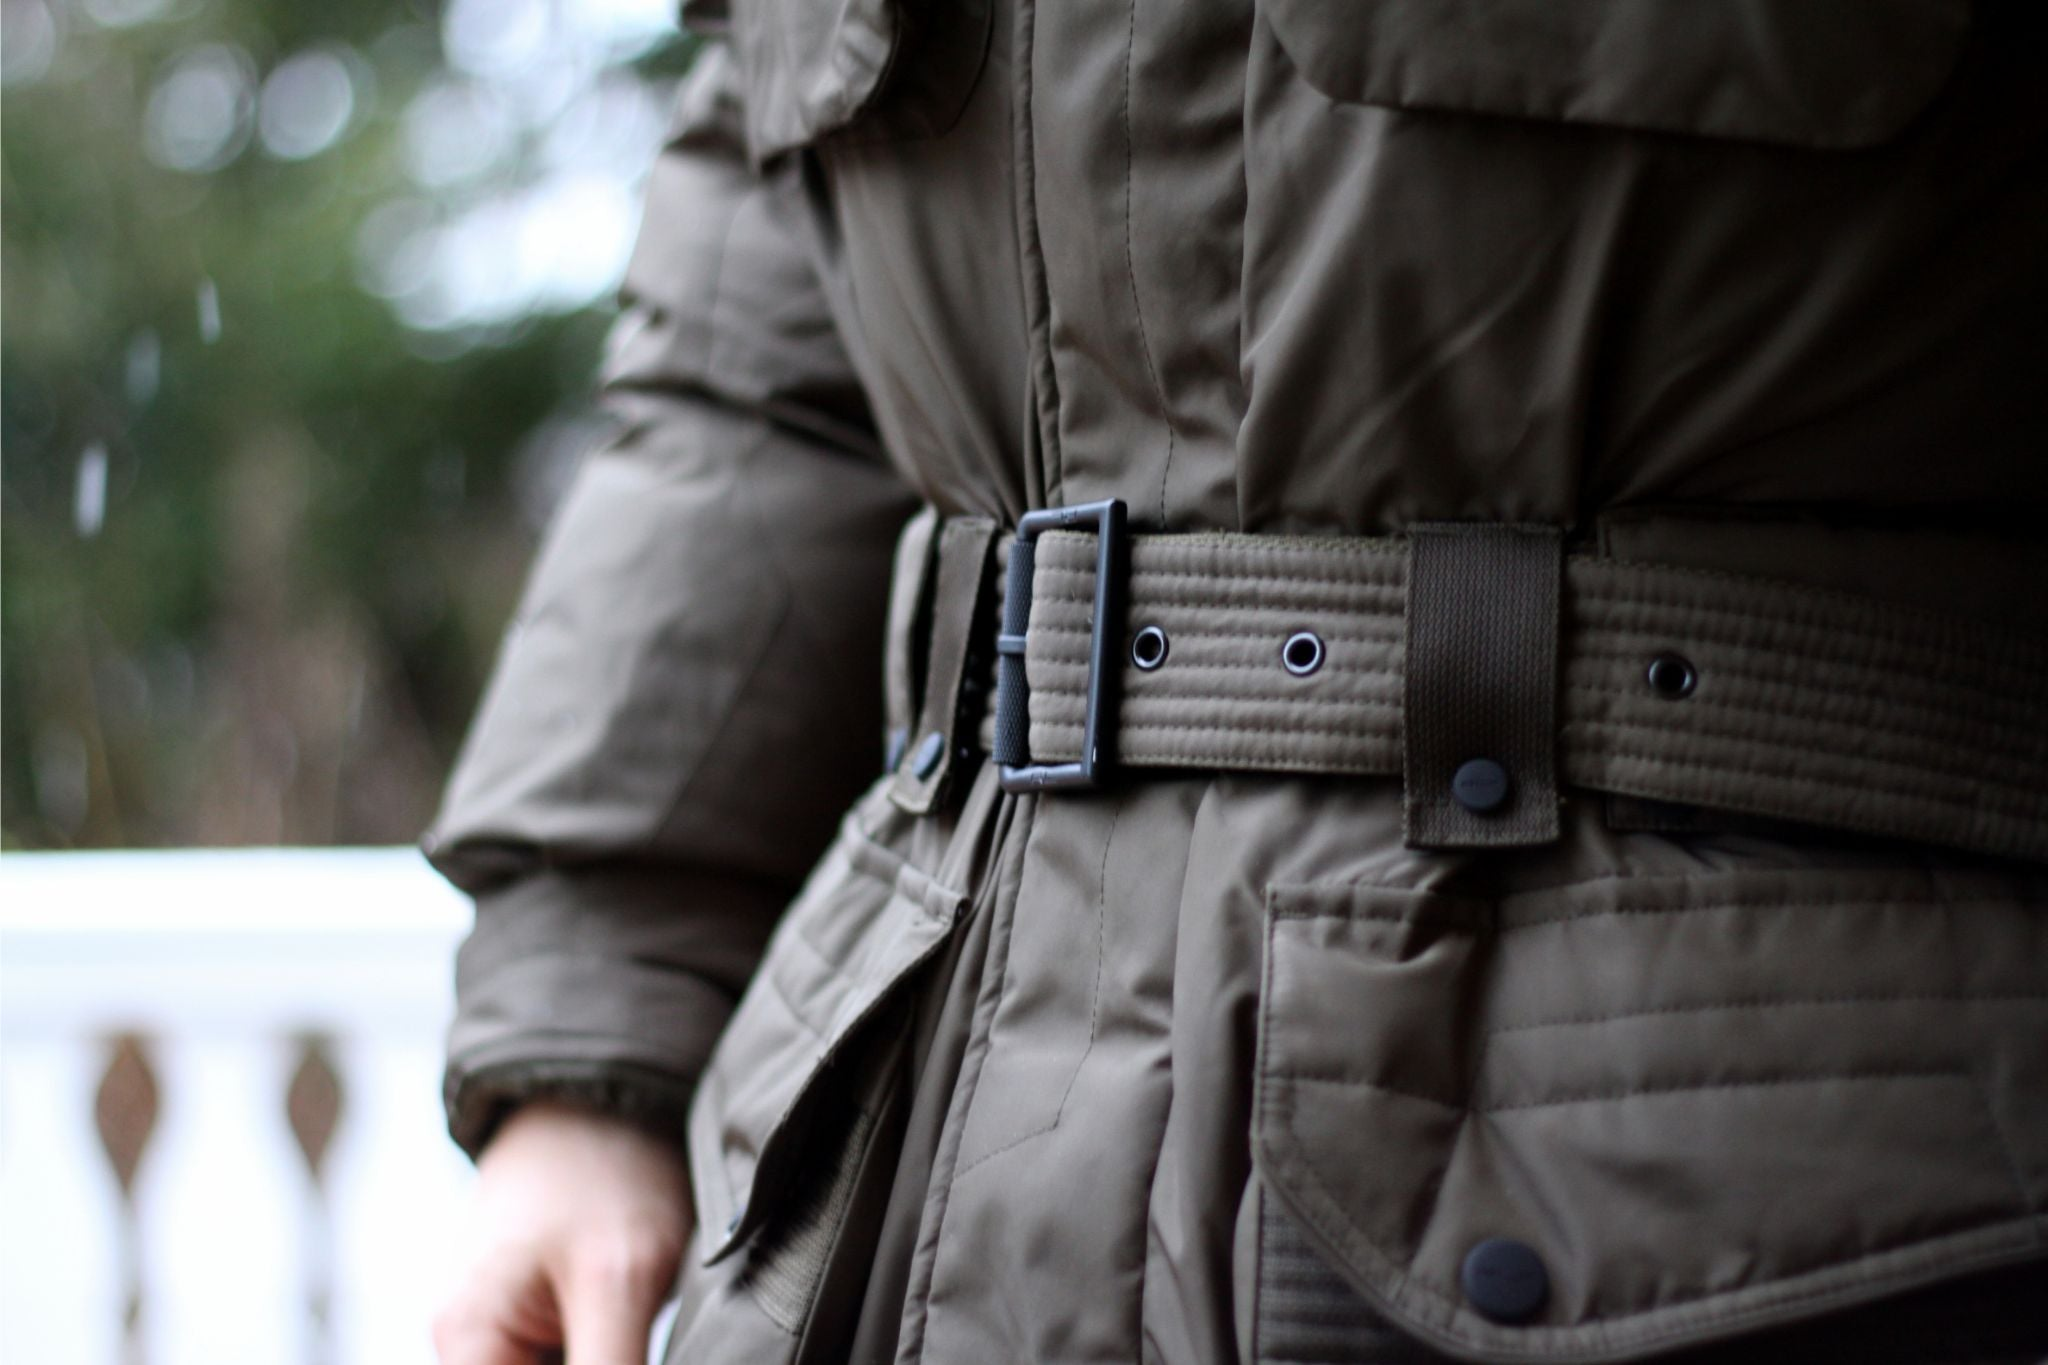 Ralph Lauren down parka jacket details - buckled self-belt